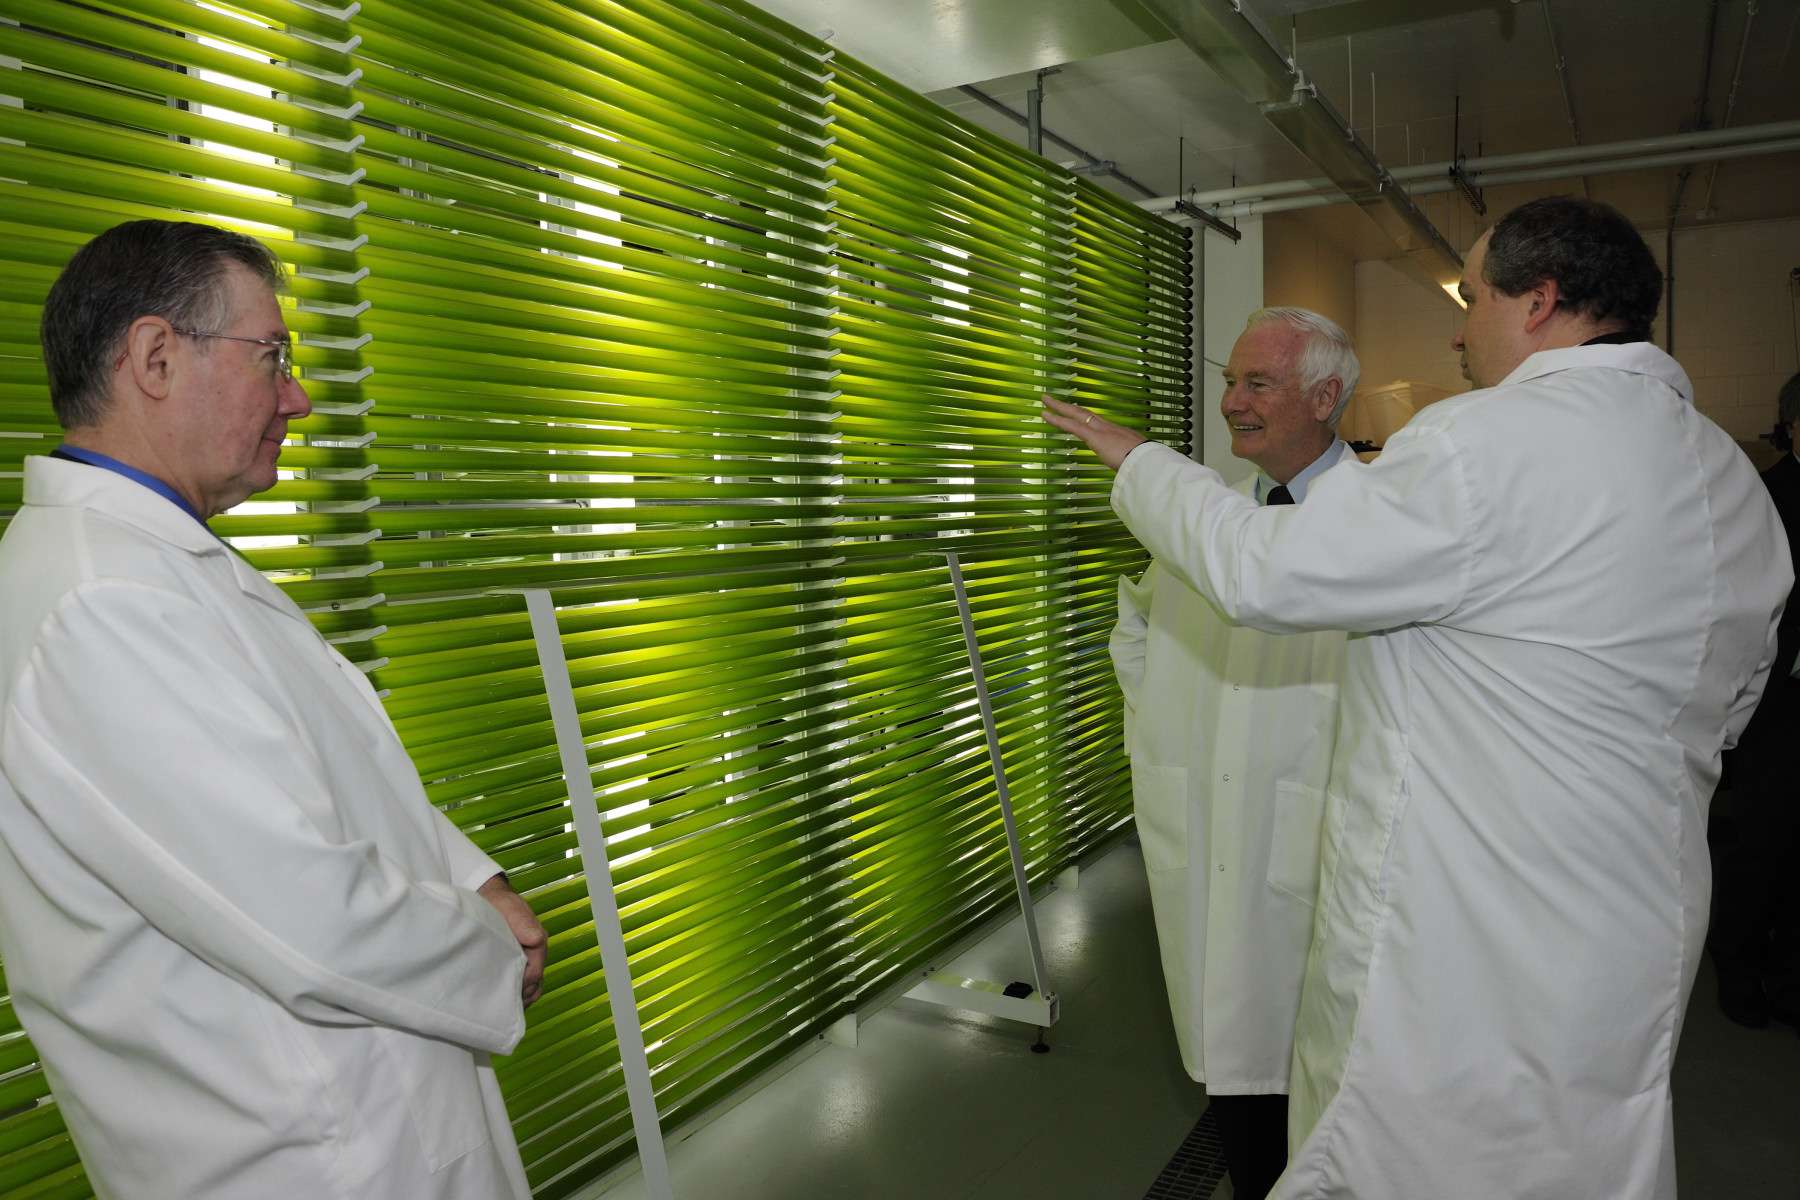 His Excellency attended a presentation by Dr. Stephen O'Leary, a research officer with the National Research Council of Canada Institute for Marine Biosciences (NRC-IMB). Dr. O'Leary is the program leader for Establishing a Canadian Capacity to Produce Biofuels from Marine Algae, a project under NRC National Bioproducts Program. The Governor General also had the opportunity to tour the algal biorefinery with lead scientist Dr. Patrick McGinn.